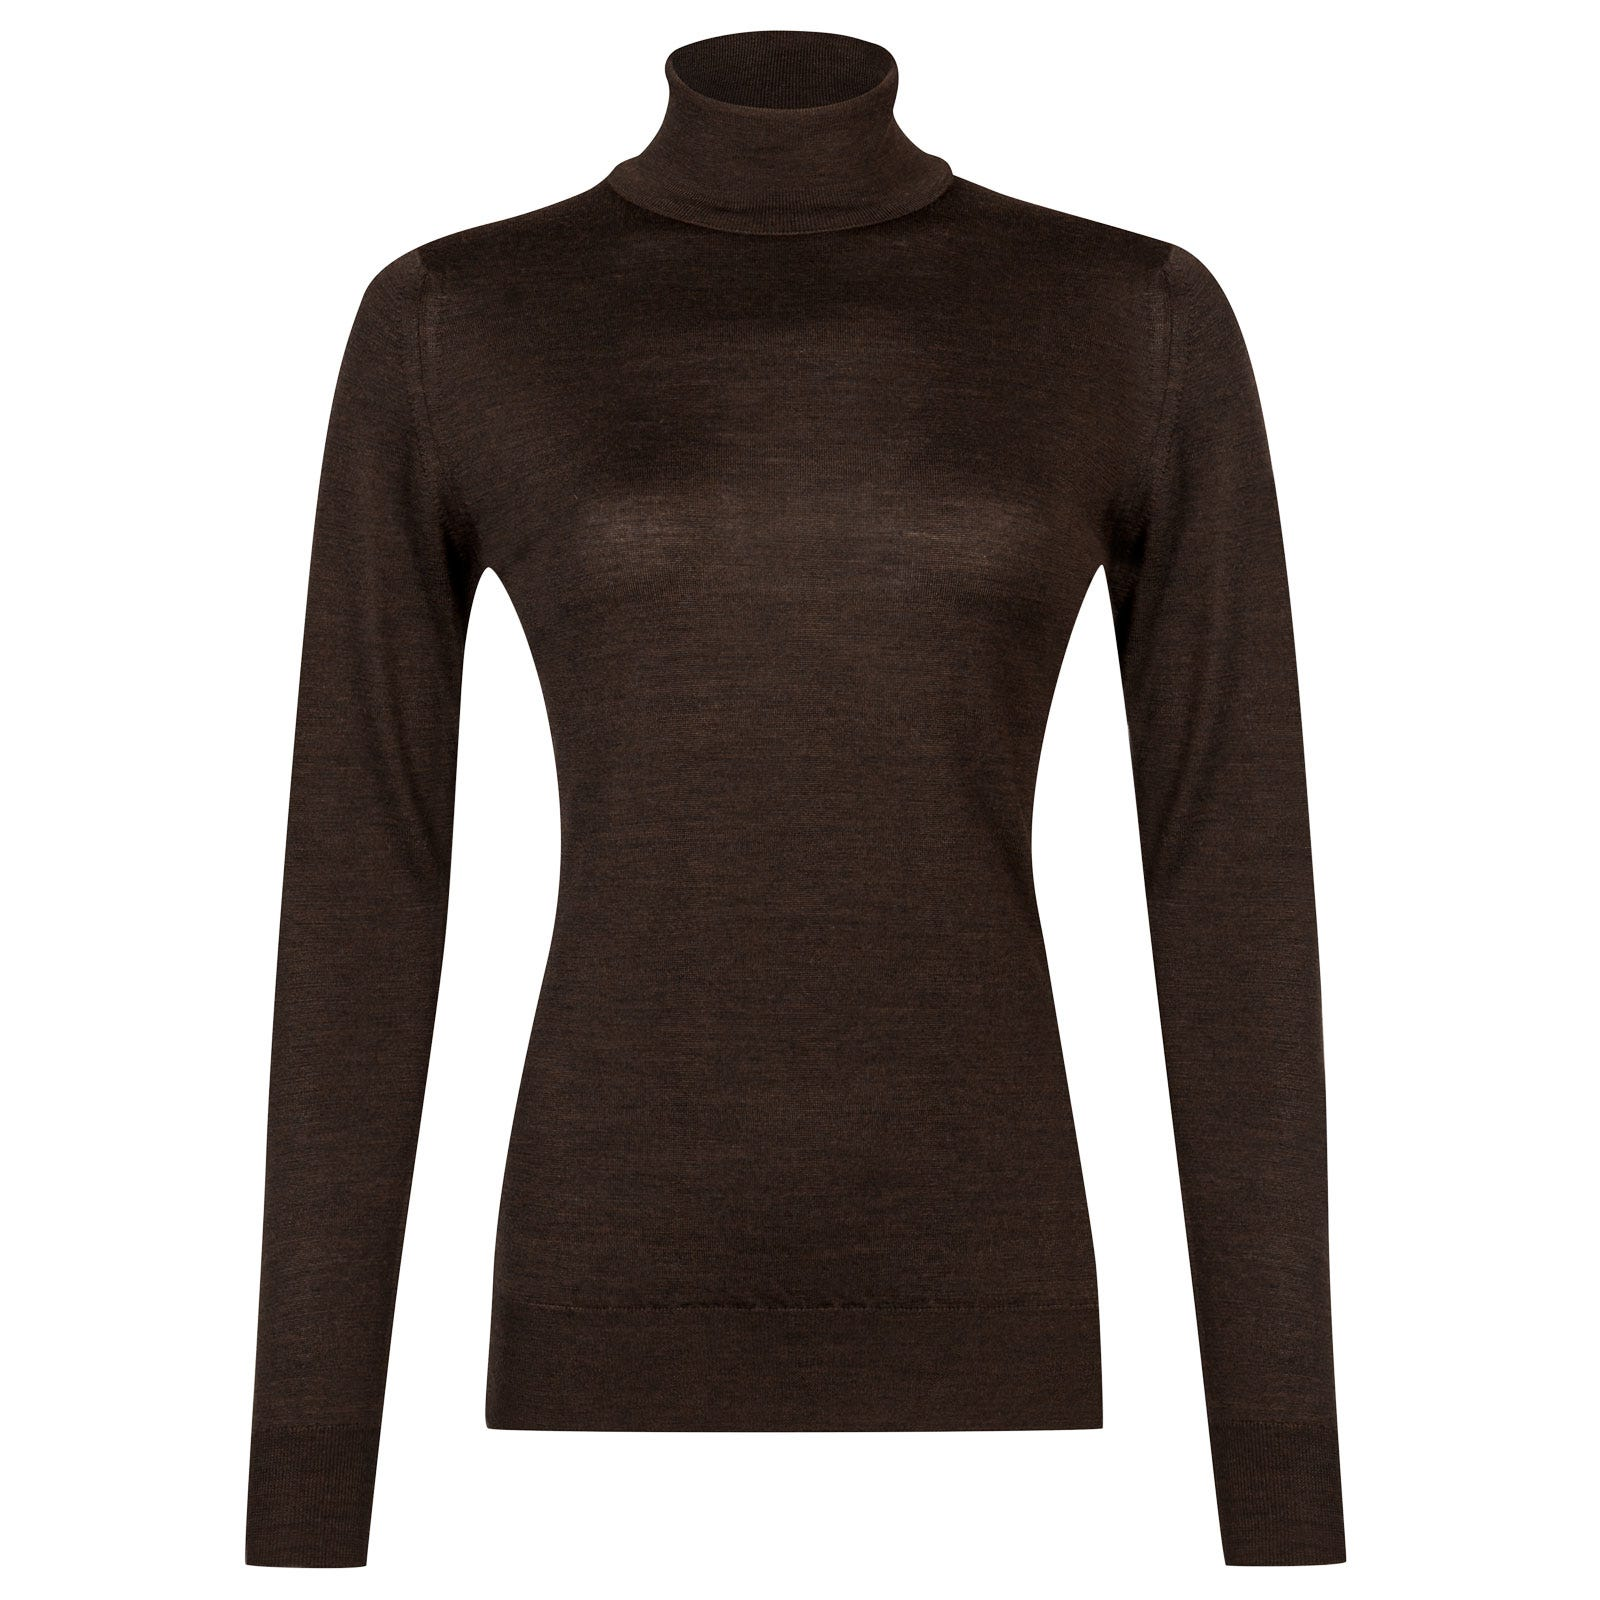 John Smedley Catkin Merino Wool Sweater in Chestnut-XL